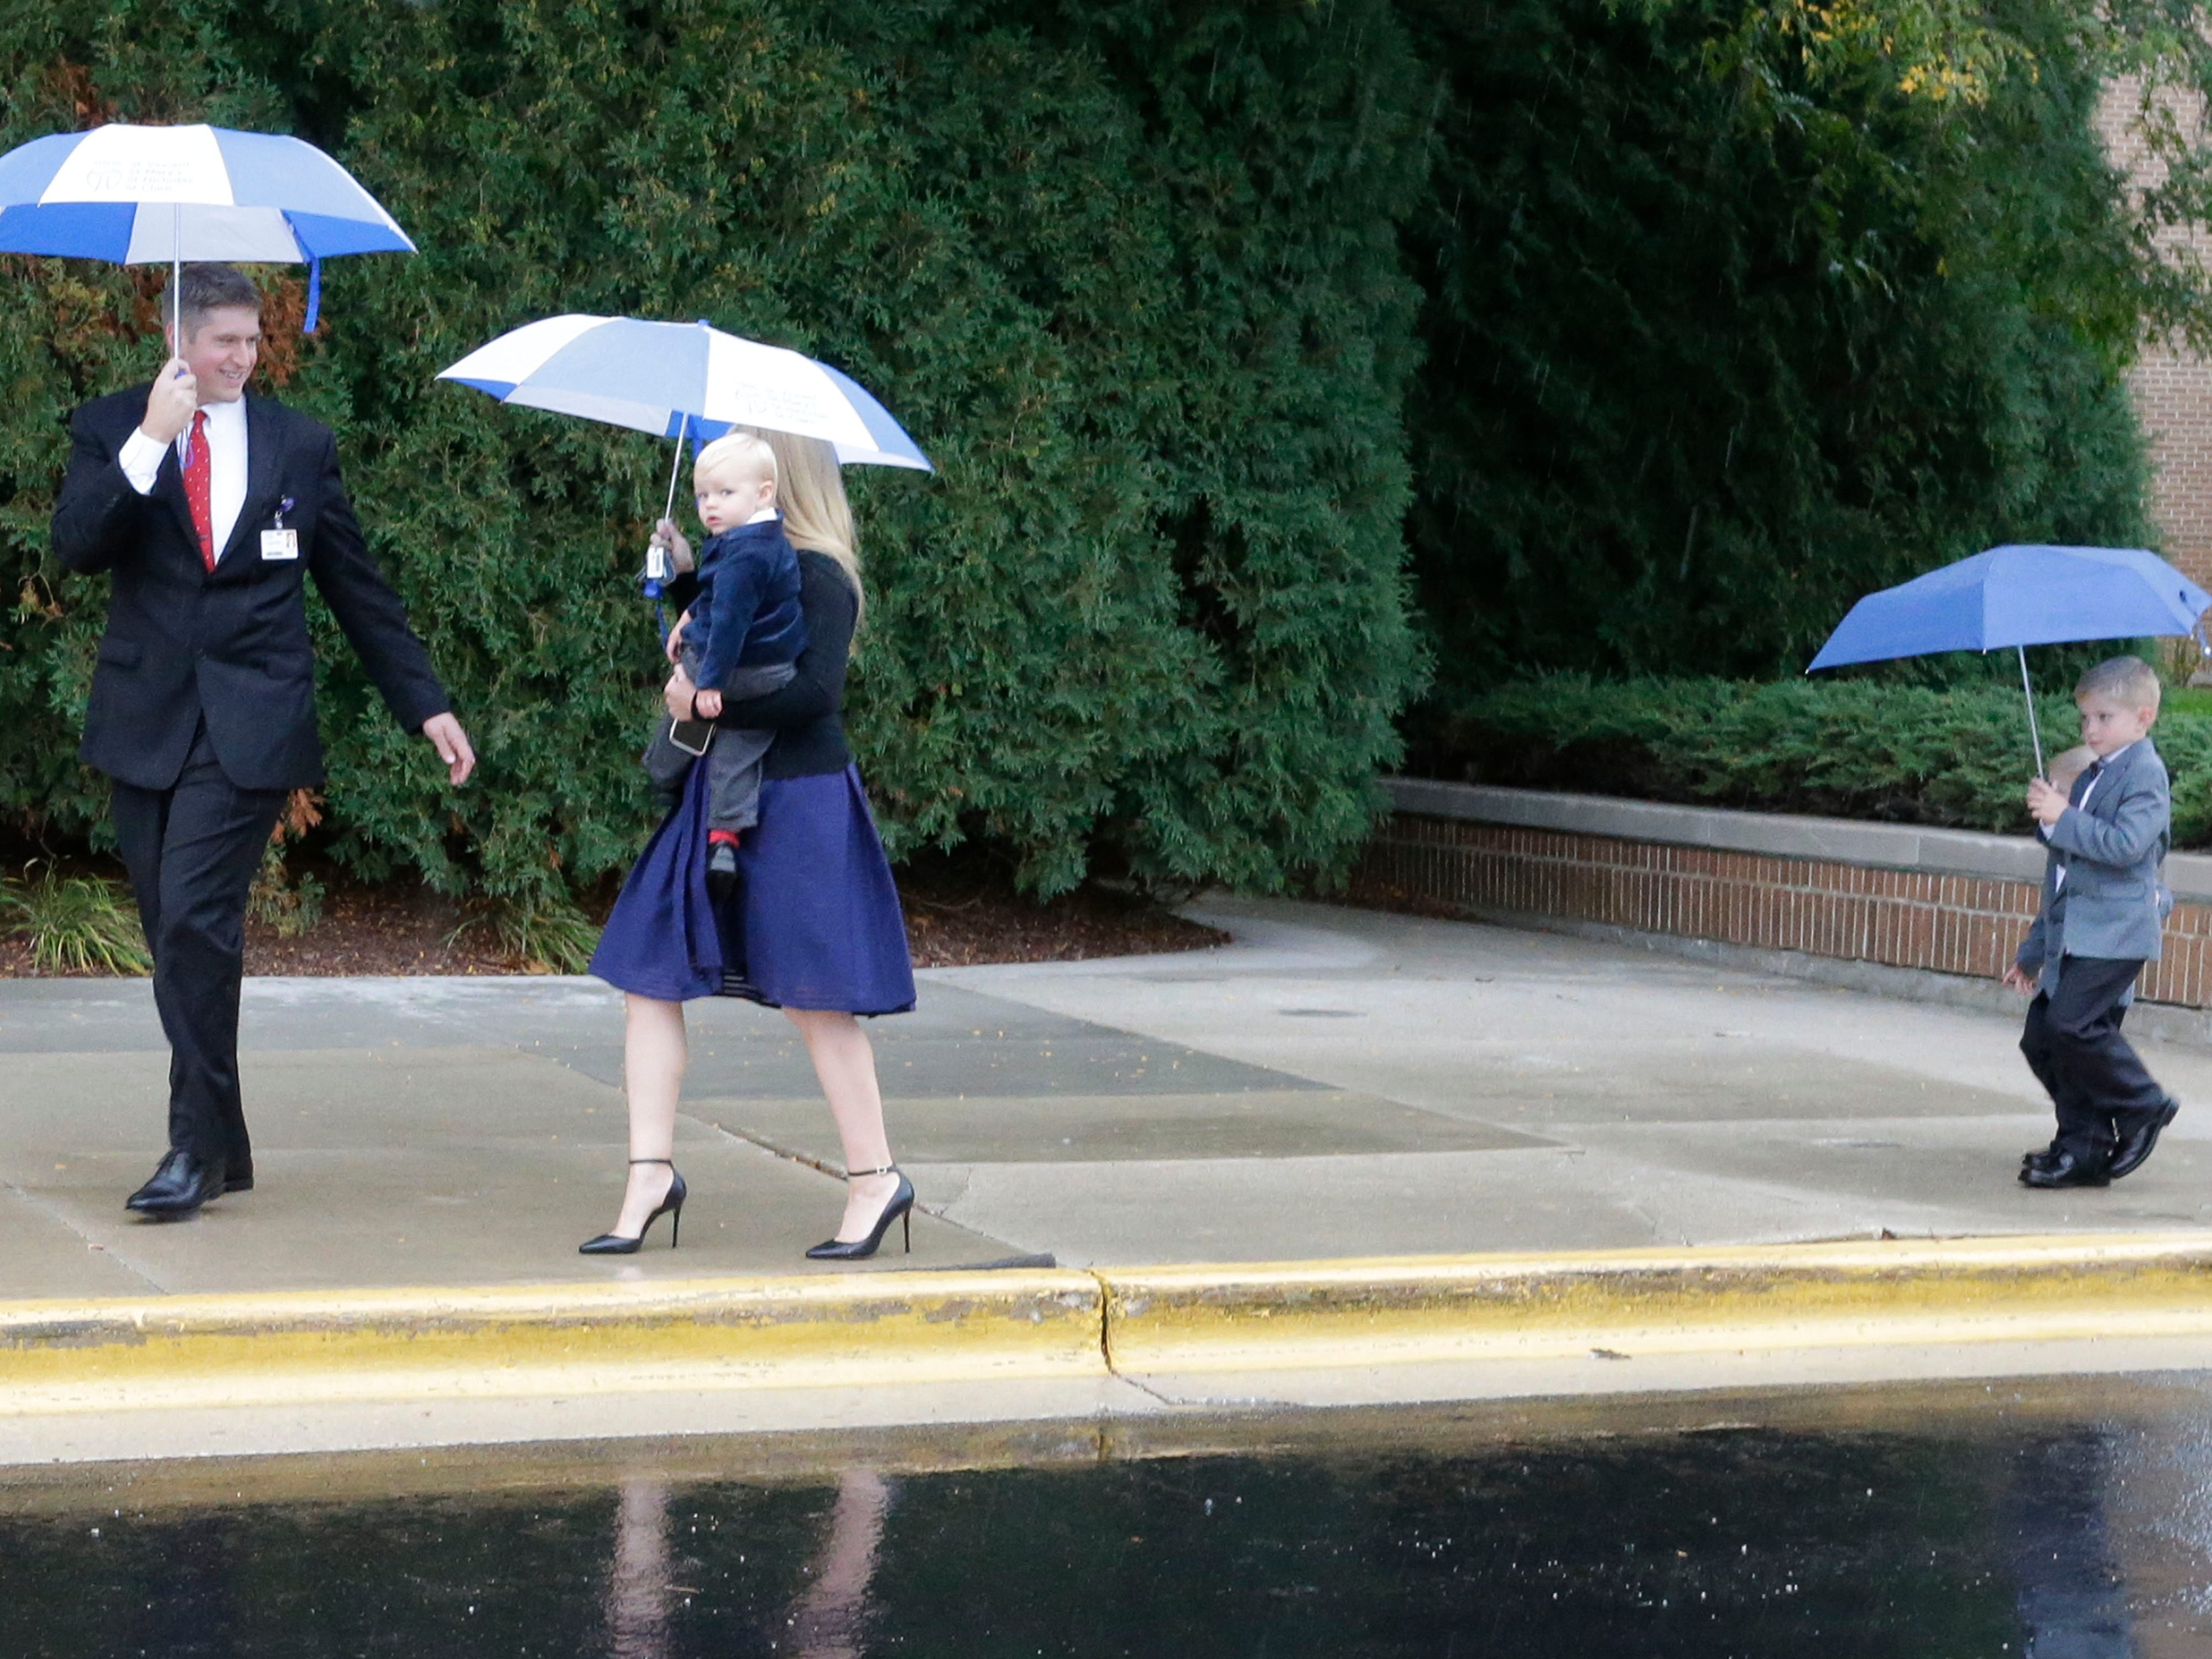 HSHS St. Nicholas Hospital new CEO Justin Selle, left, walks with his family under umbrellas as they arrive to a Mass of Celebration at the facility, Wednesday, September 19, 2018, in Sheboygan, Wis. Selle was officially installed as the new President and CEO of the hospital.